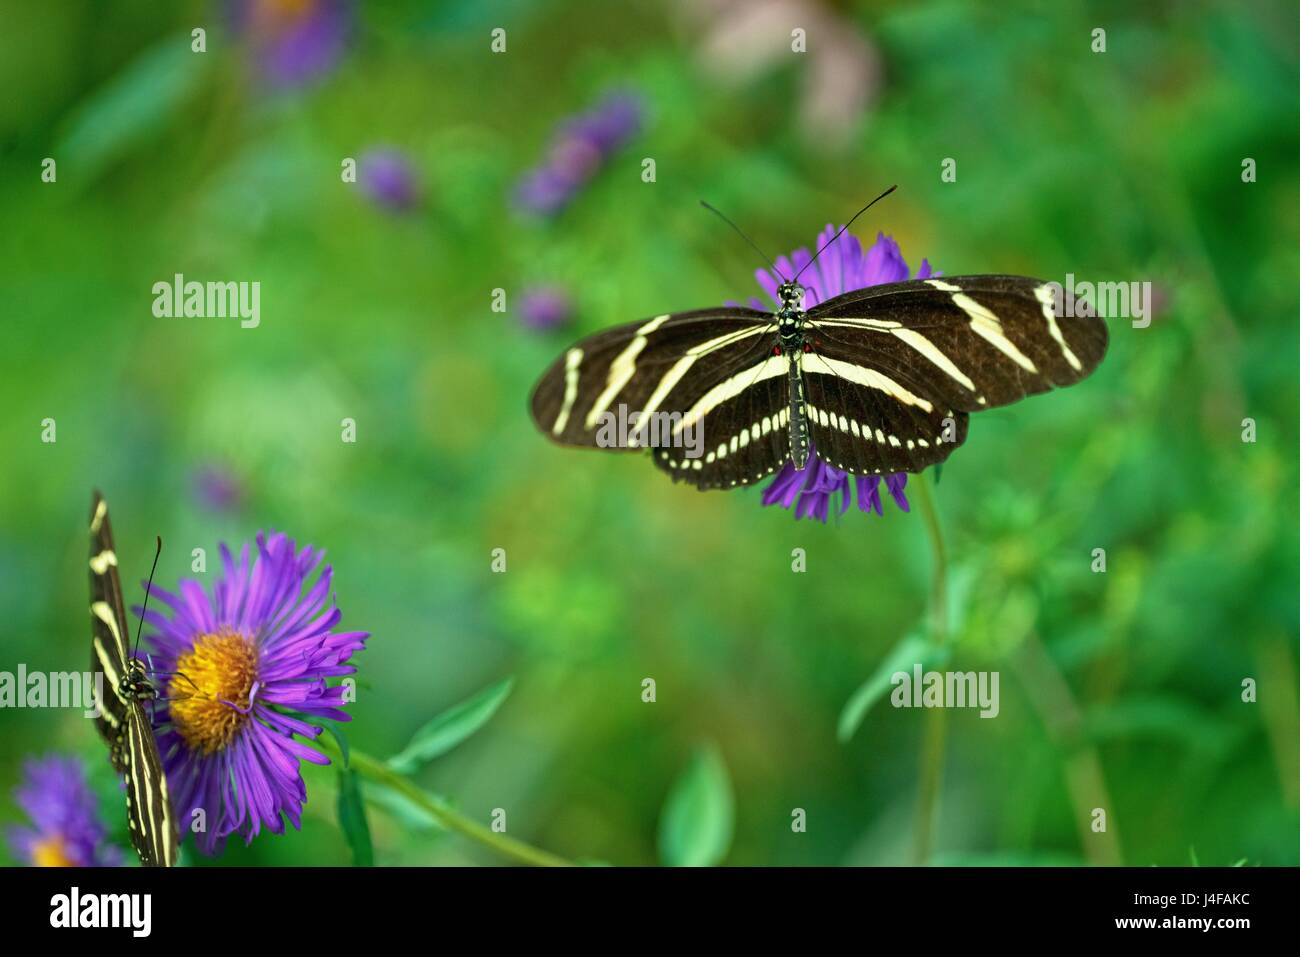 A beautiful photo of a pair of Zebra Longwing Butterflies feeding on nectar from a flower. Residents of the Butterfly - Stock Image